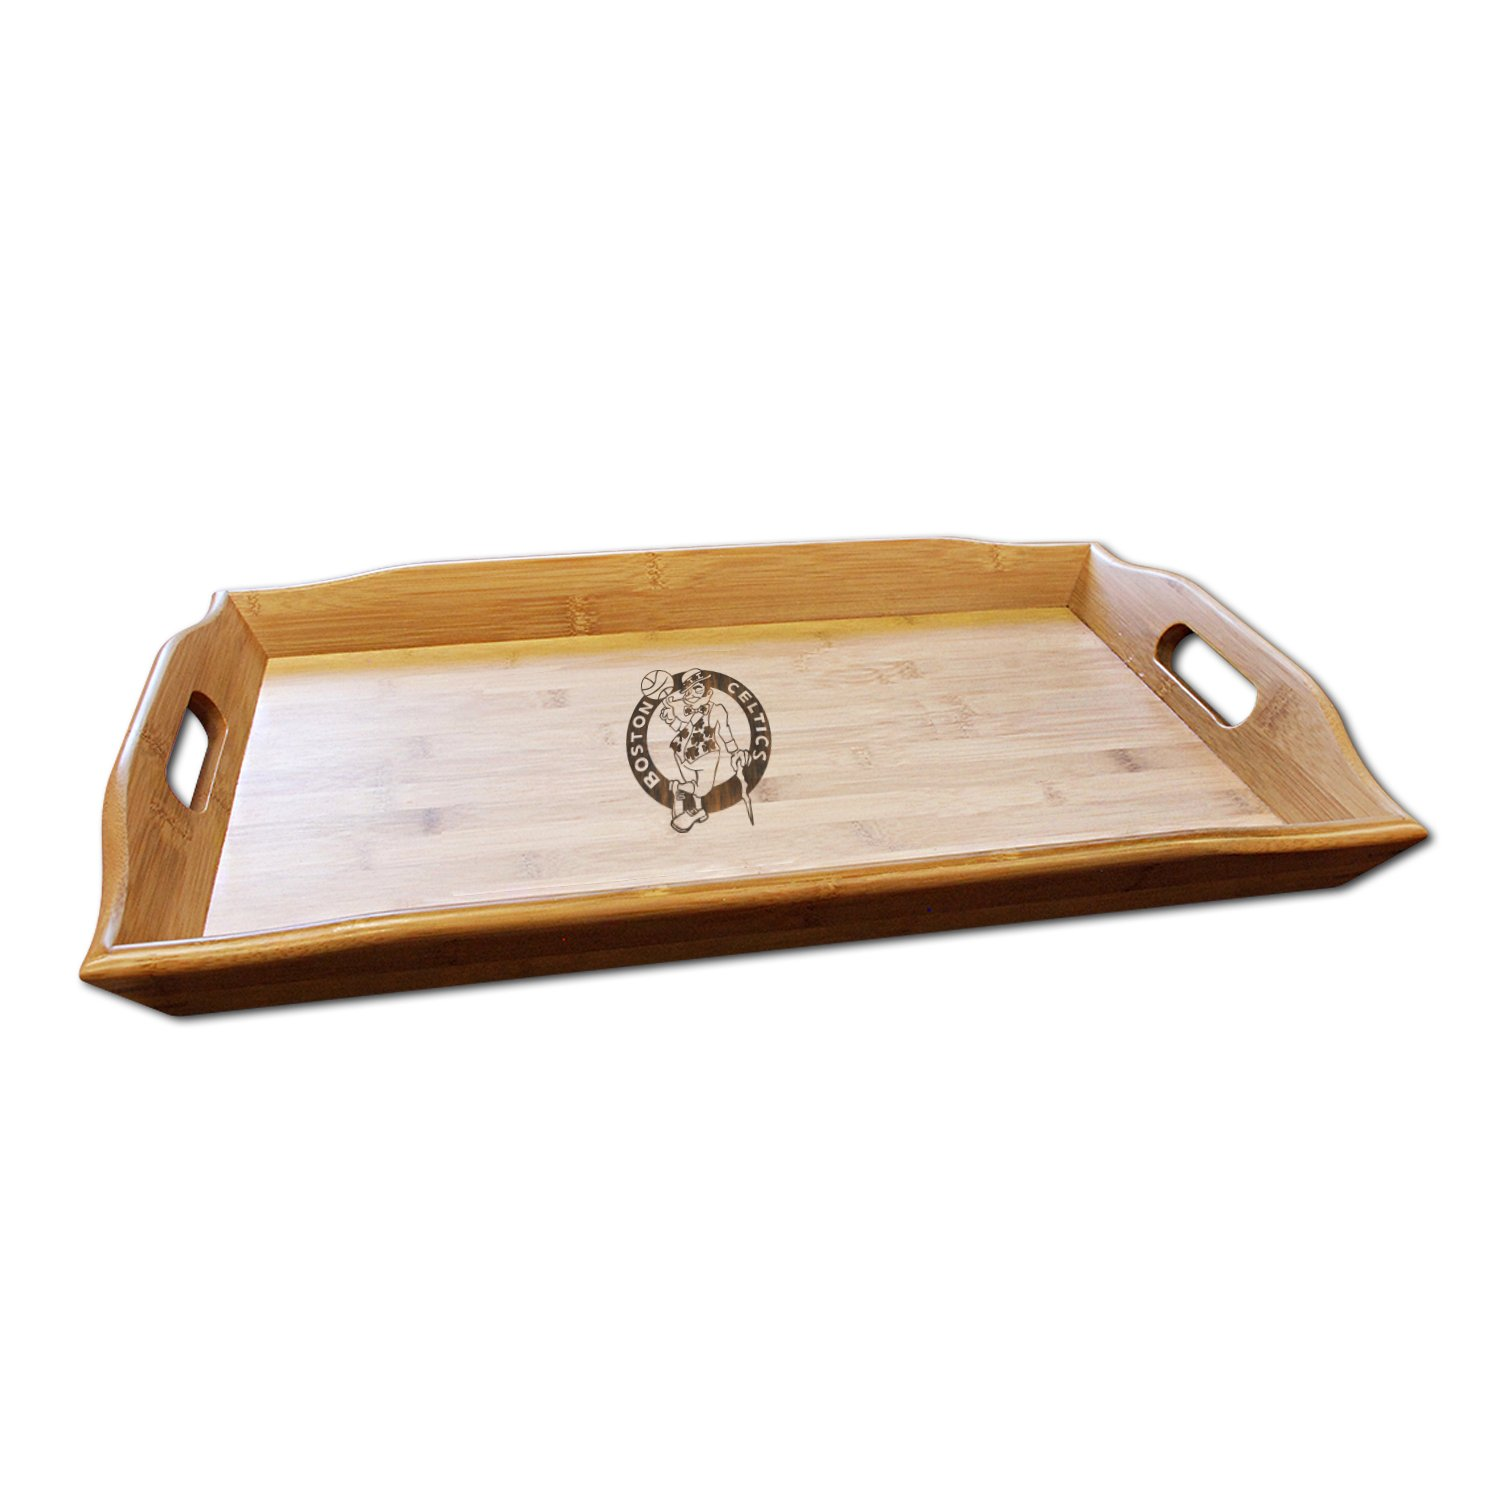 NBA Boston Celtics Bamboo Serving Tray by Coopersburg